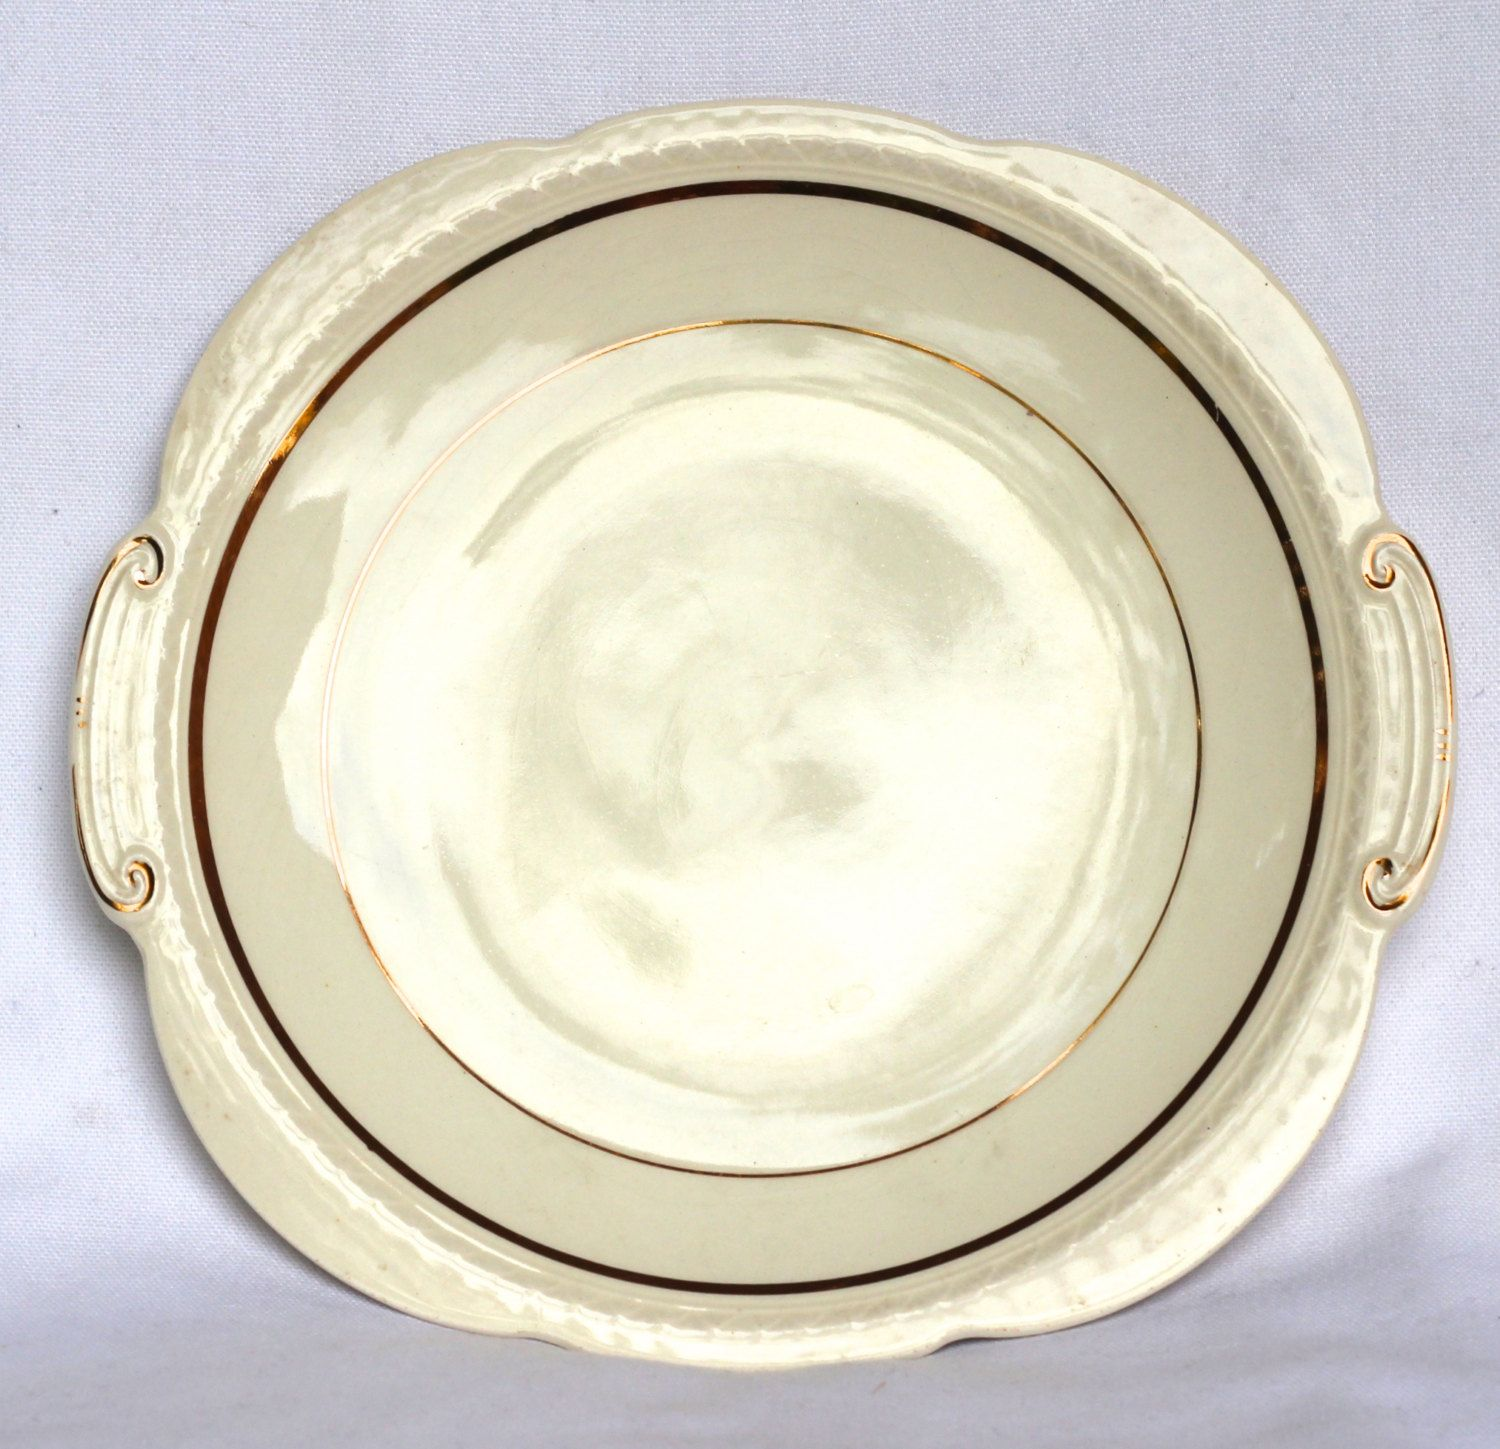 Decorative Dinner Plates Swinnertons Majestic Vellum Reg No 837607 Decorative Plate Bone